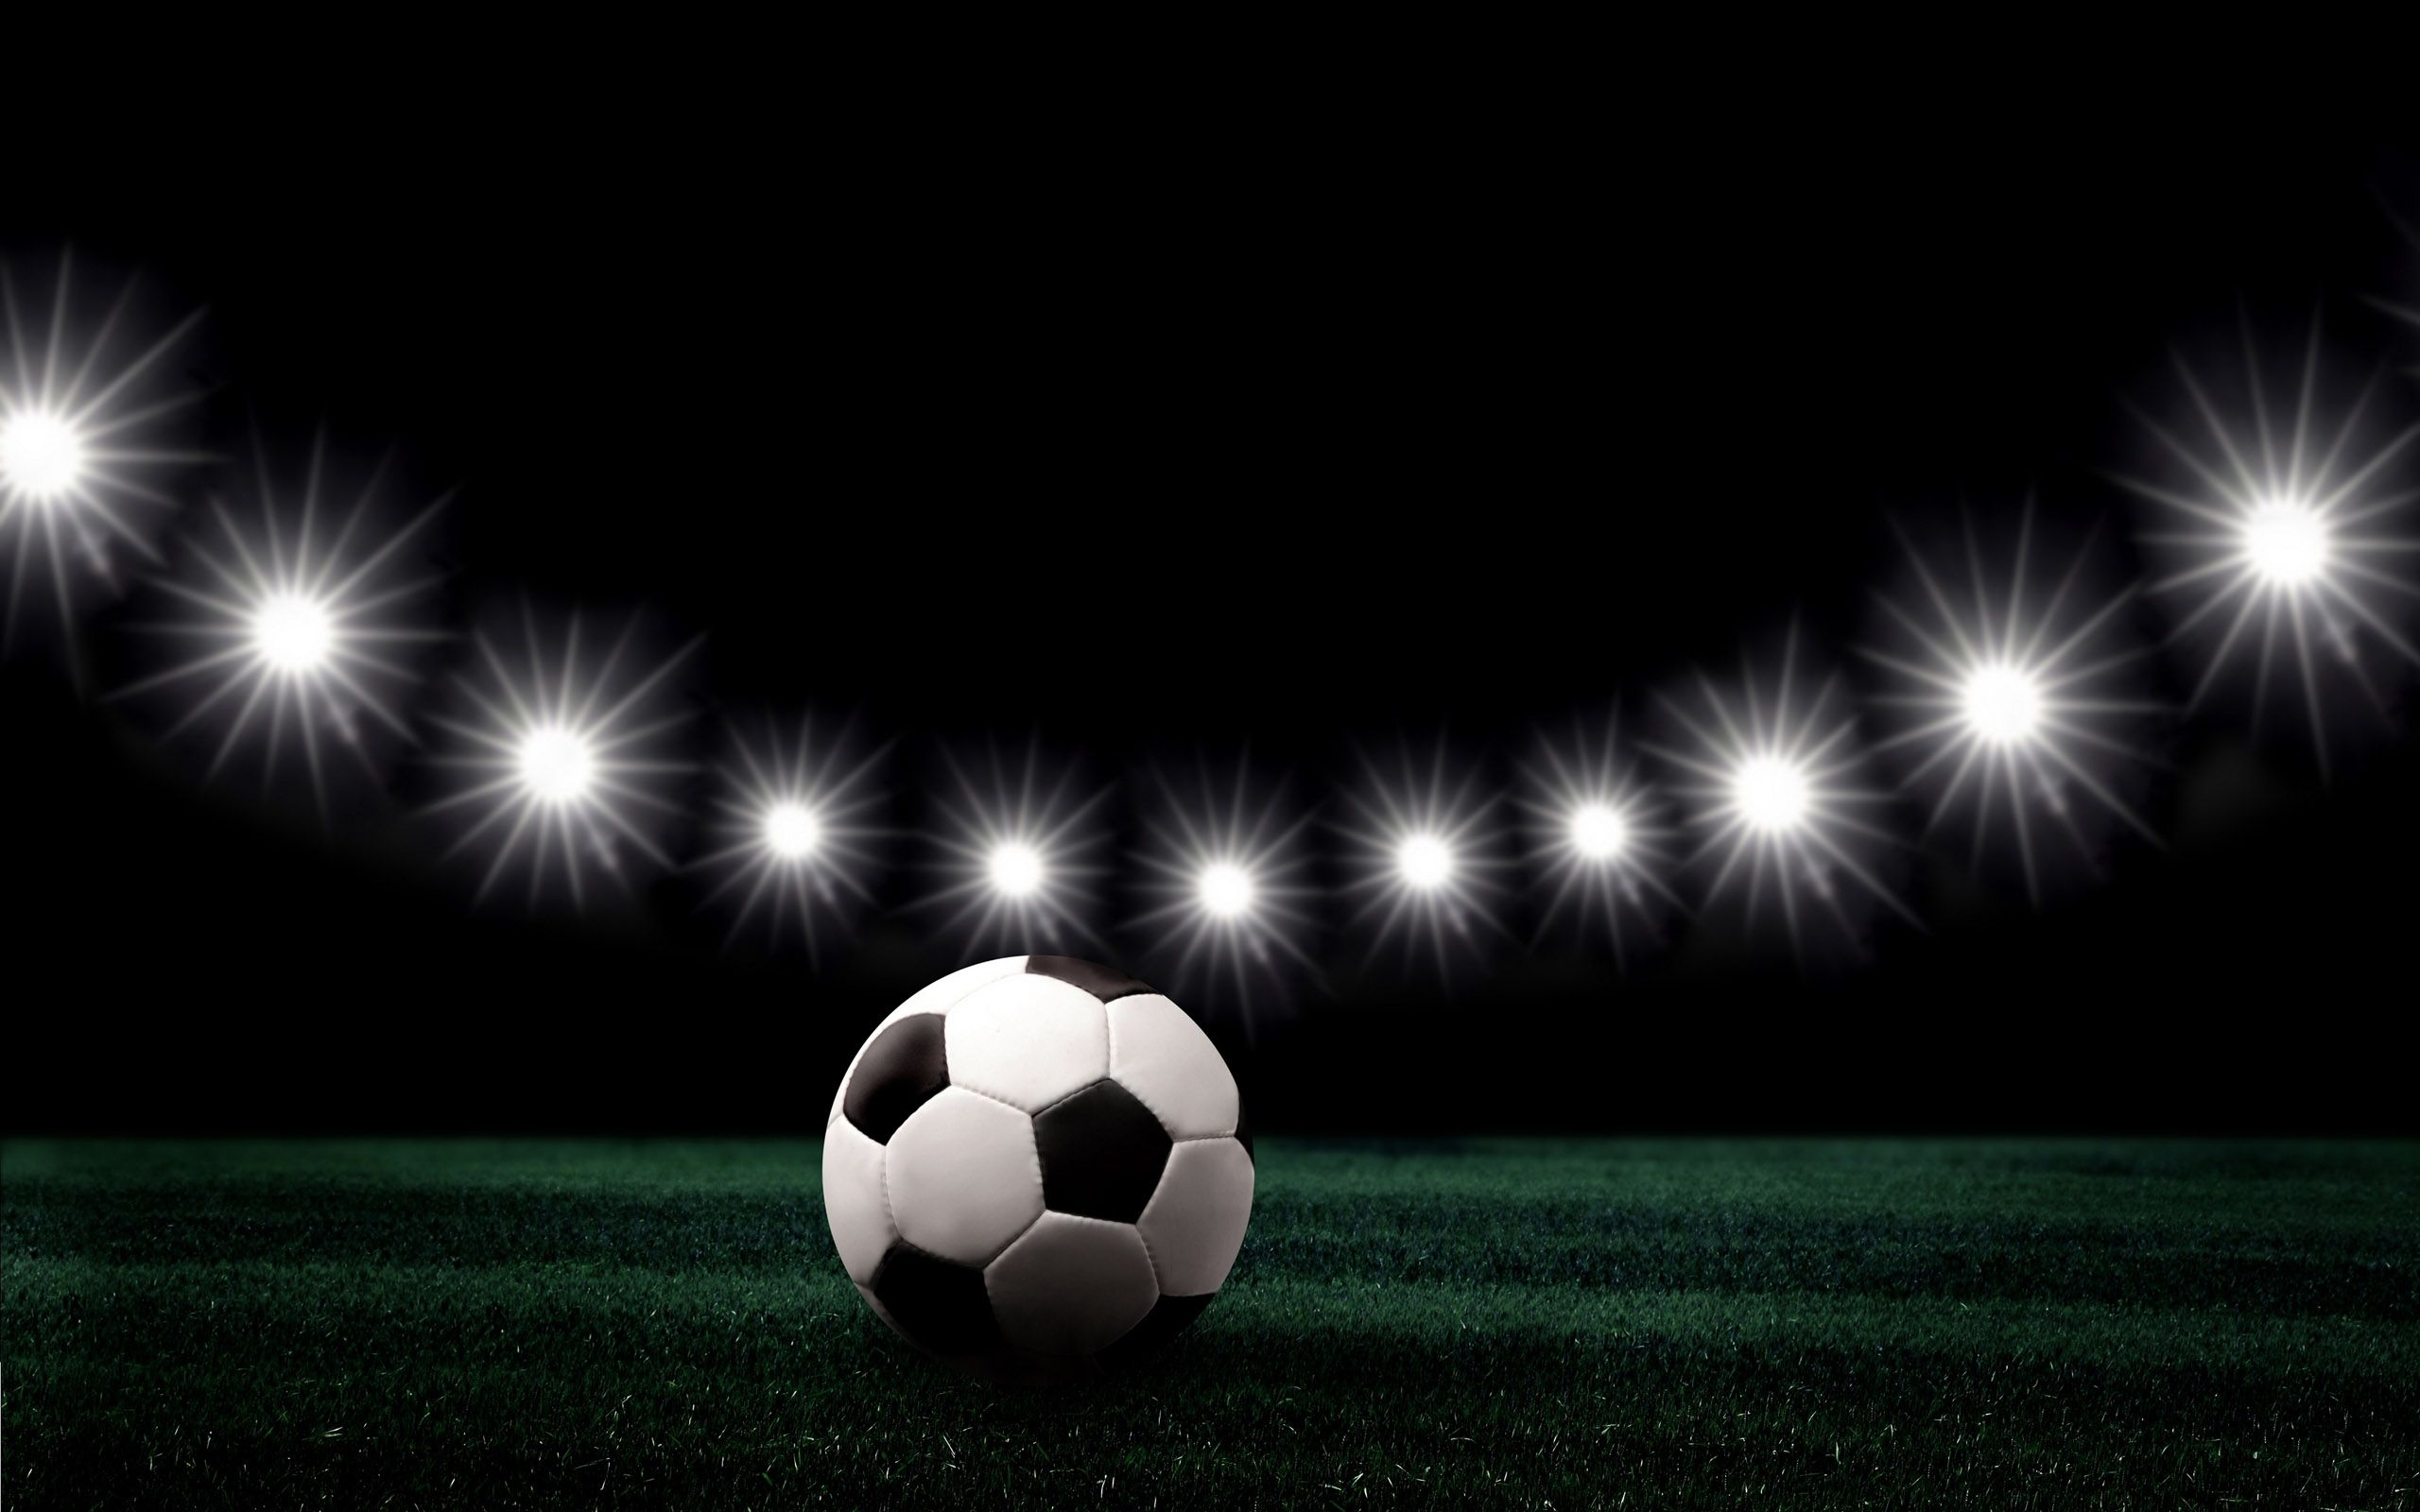 Under The Lights Http Www Wallpapersoccer Com Under The Lights Html Soccer Pictures Soccer Backgrounds Sports Wallpapers